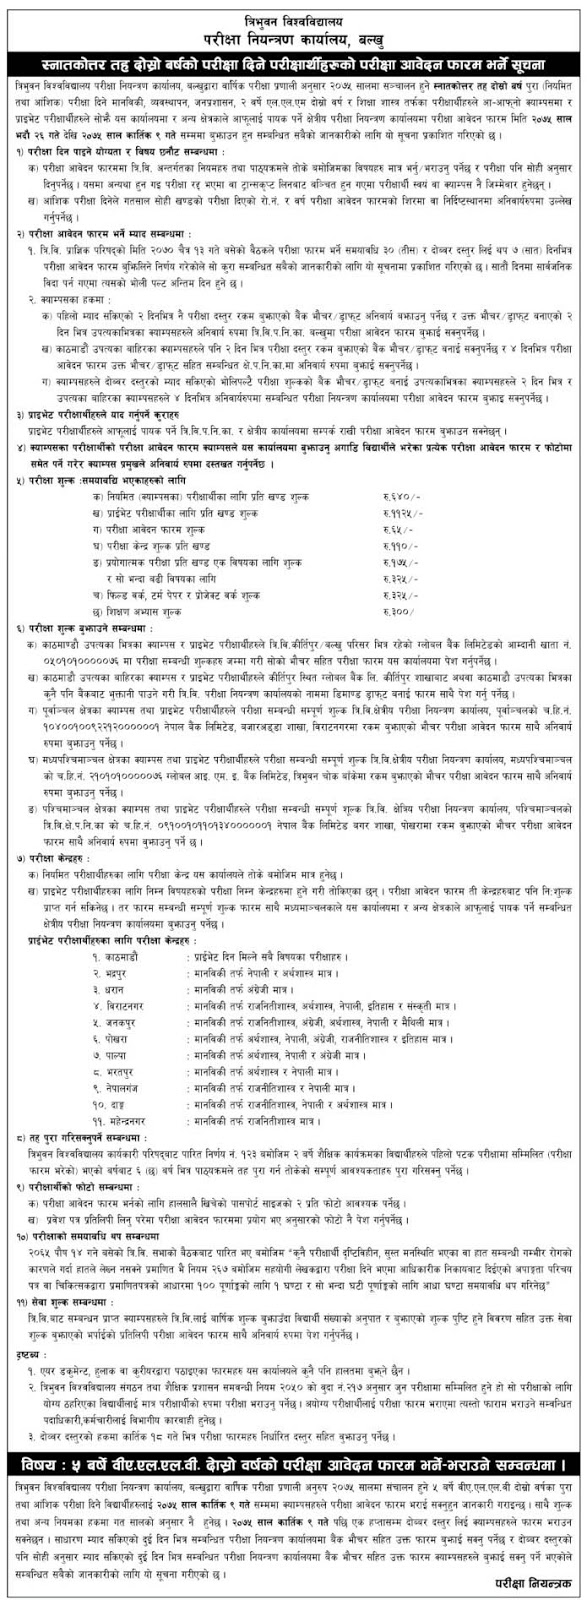 Master 2nd Year & BALLB 2nd Year Exam Form Fill Up Notice: Tribhuvan University